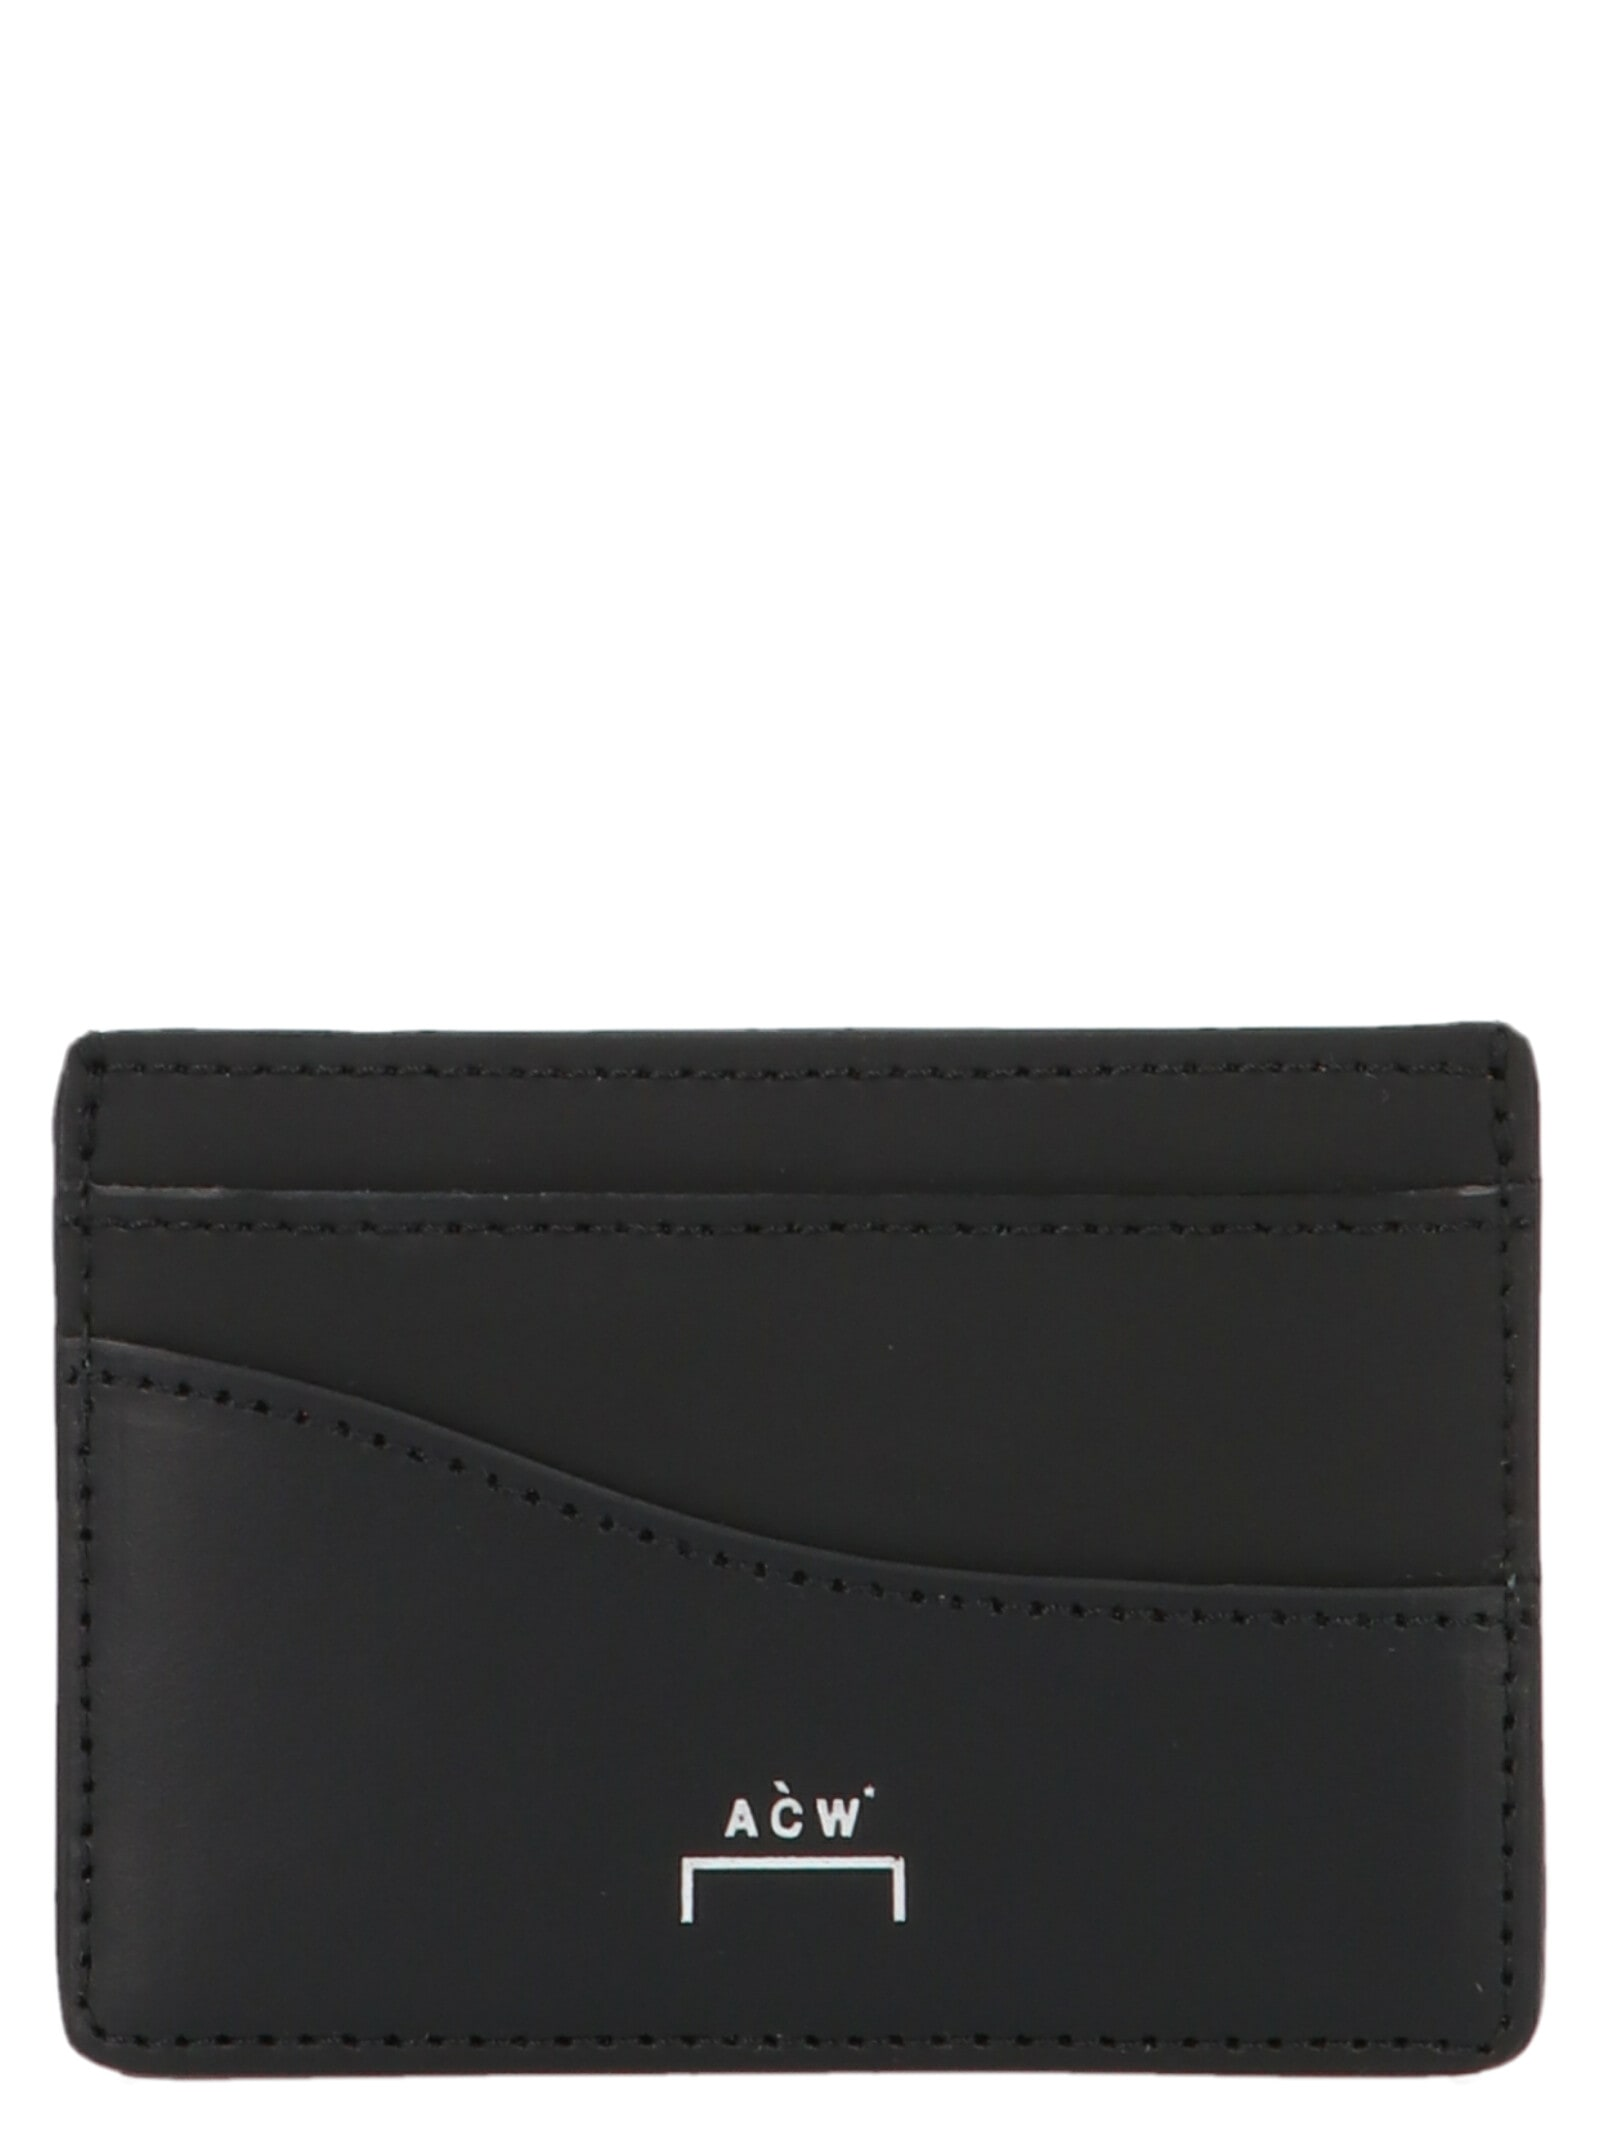 A-COLD-WALL A-cold-wall Cardholder